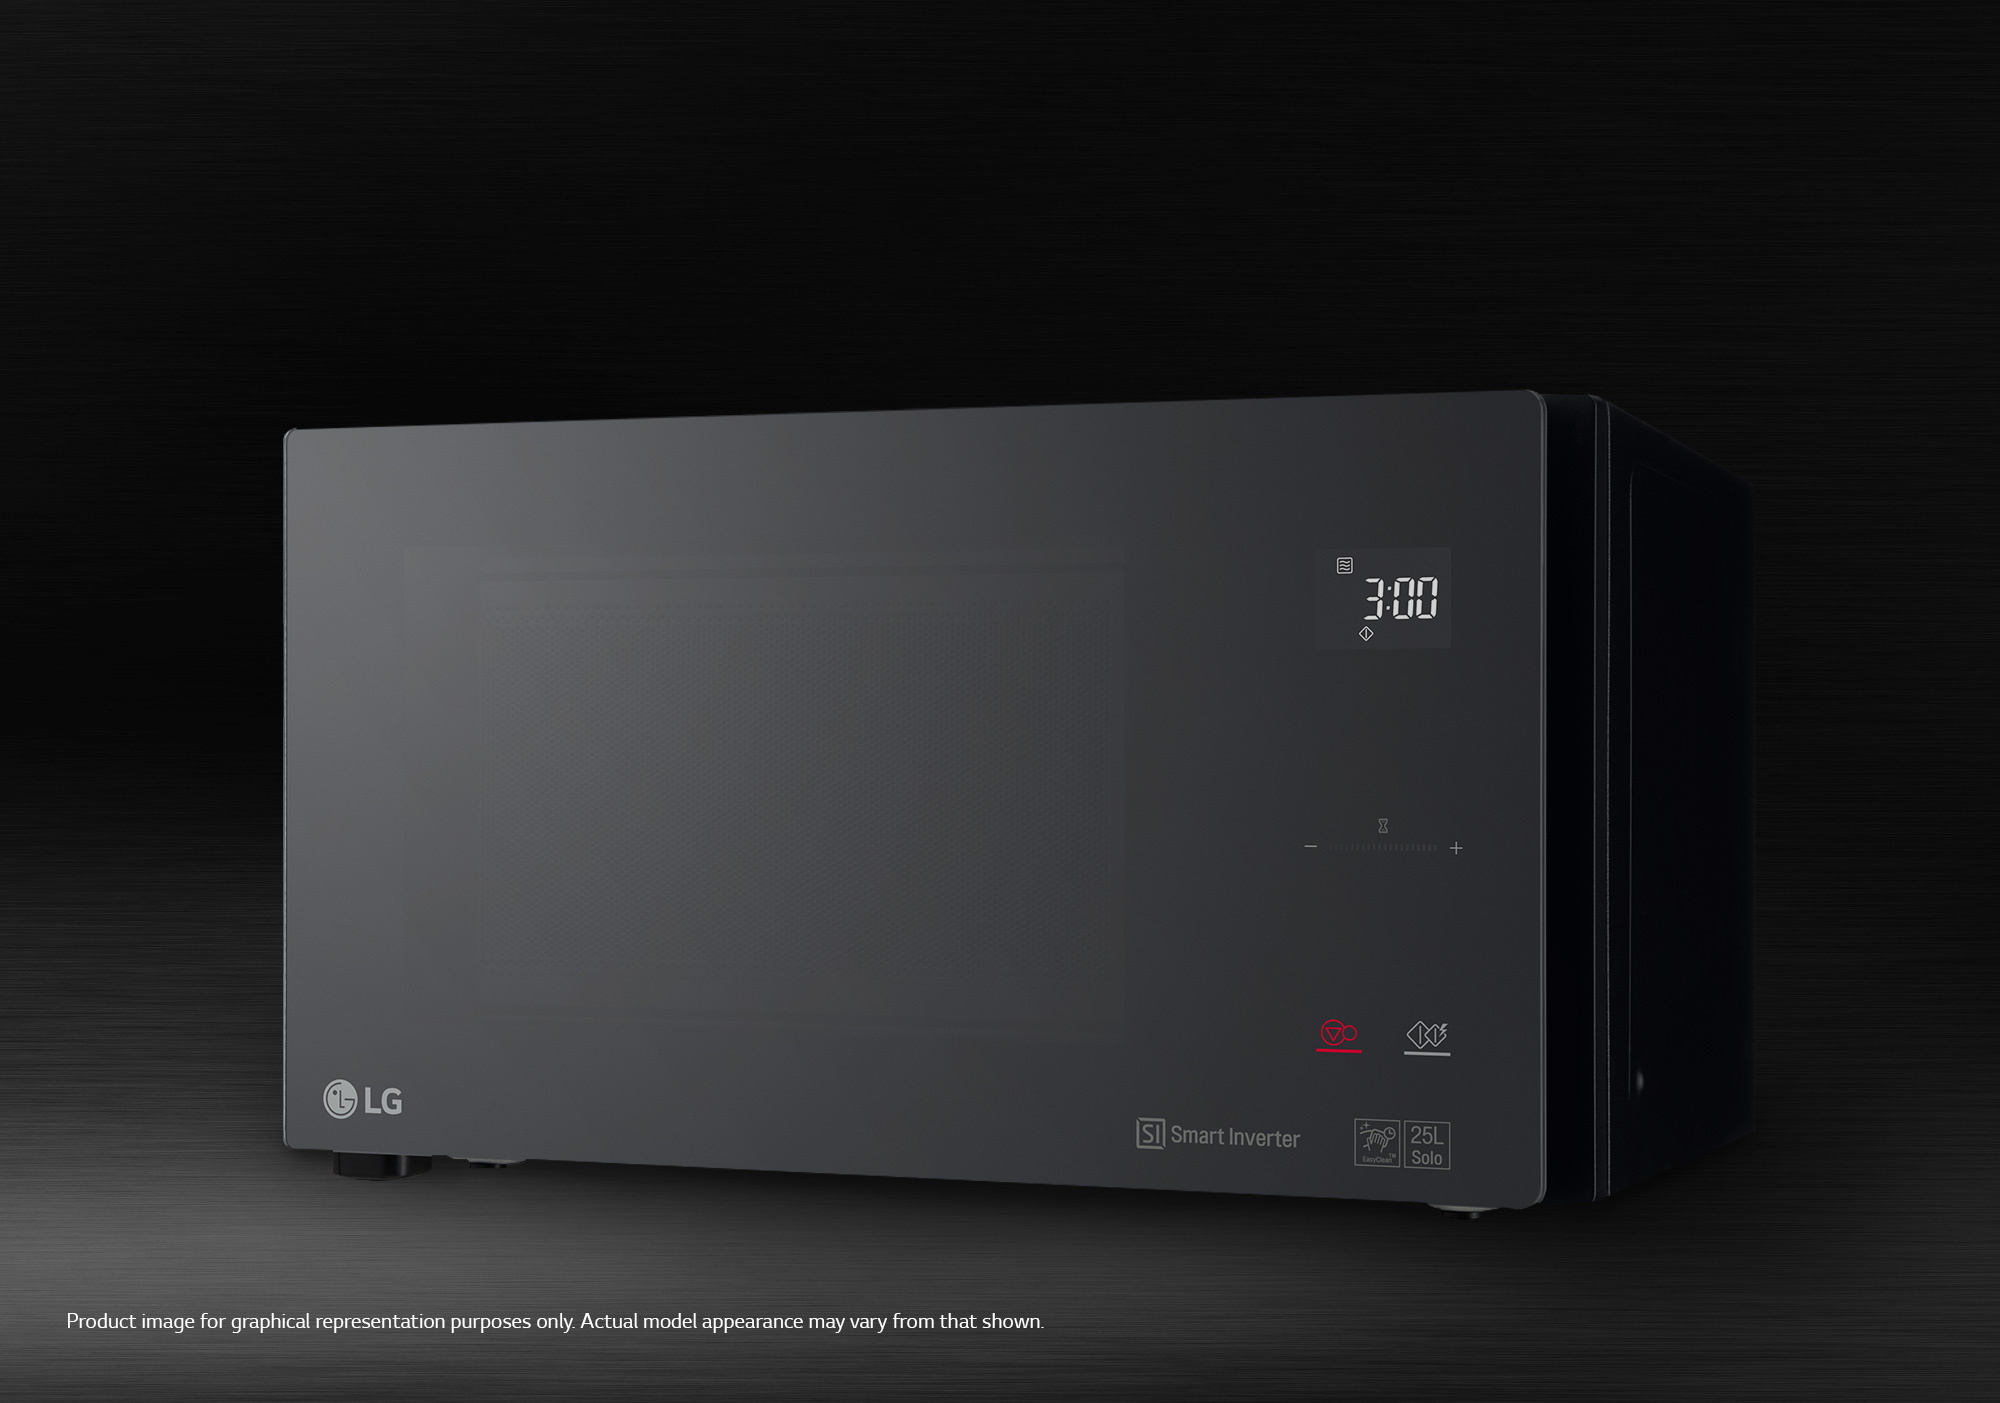 lg neochef microwave 25l grill sts